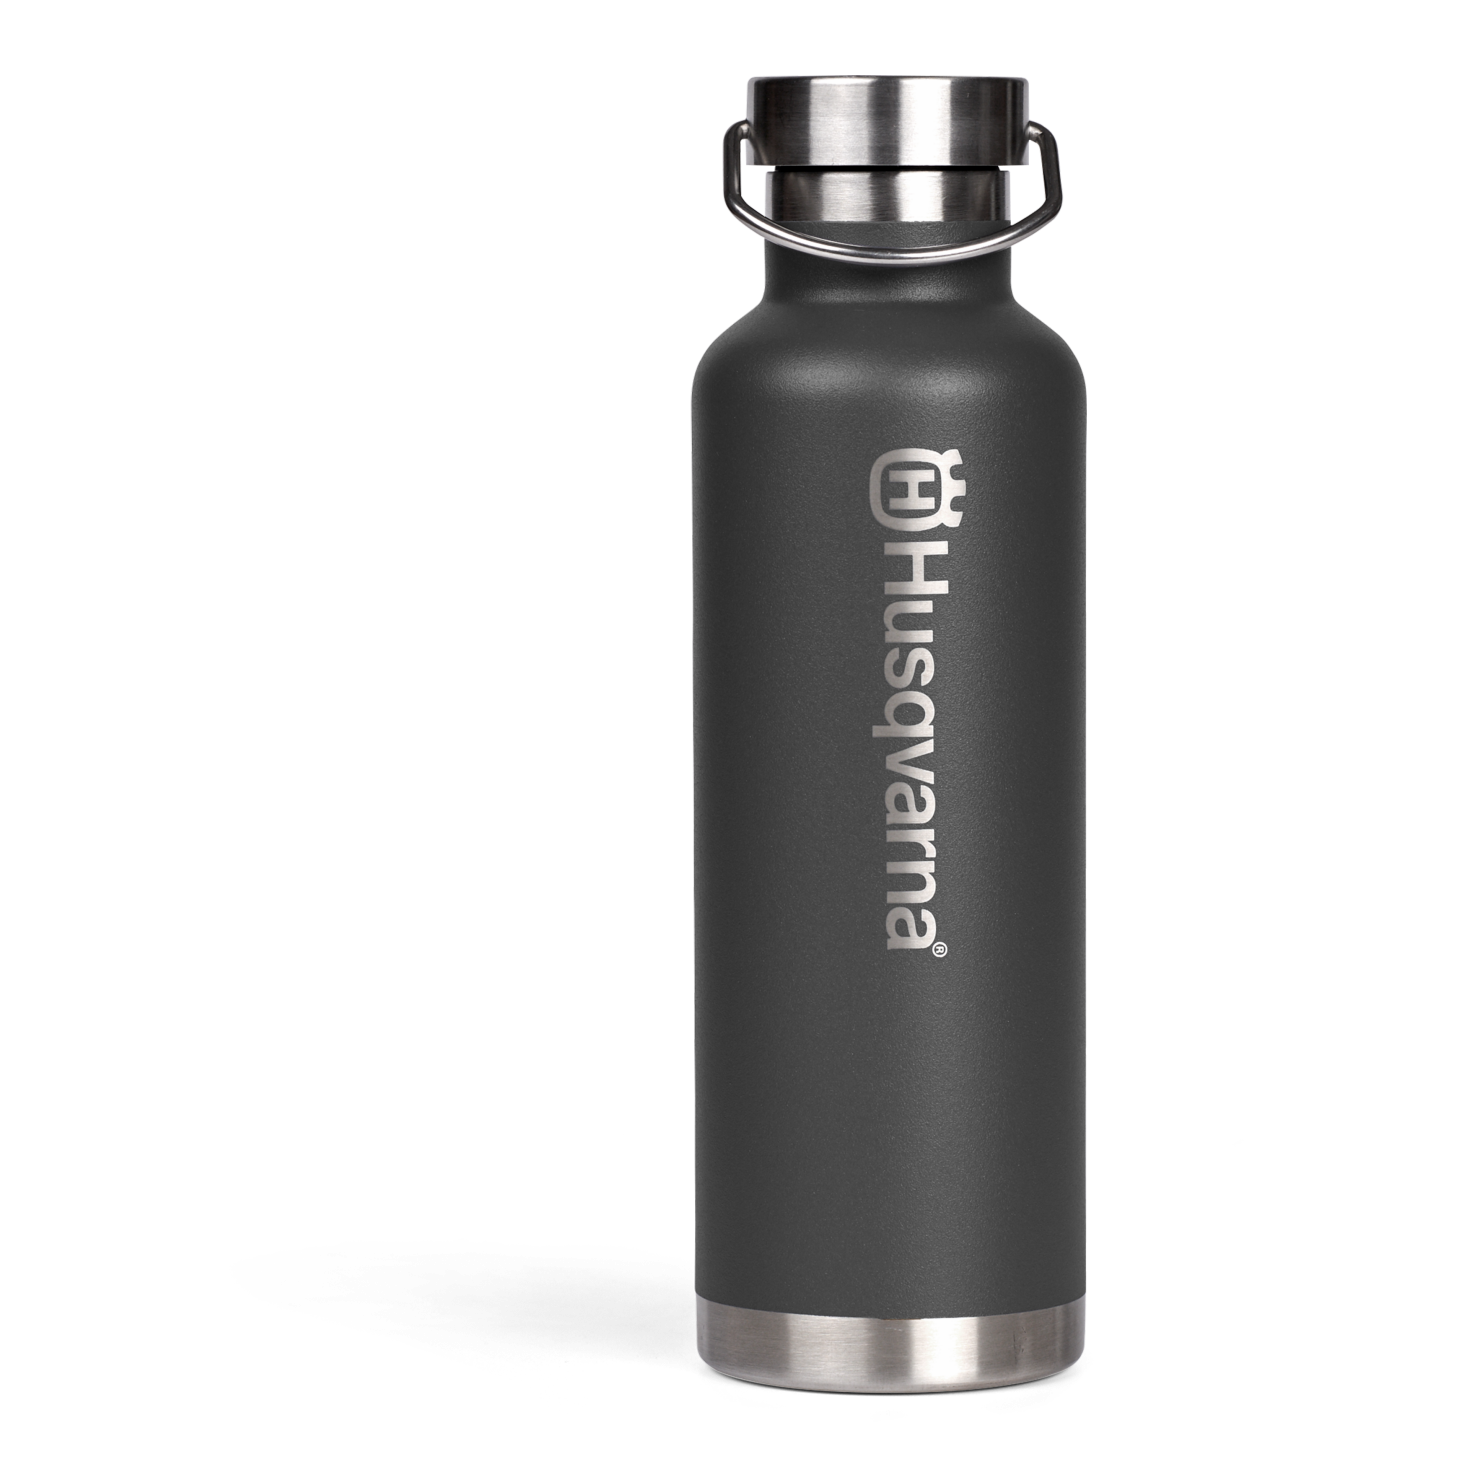 Image for Vatten Water Bottle from HusqvarnaB2C